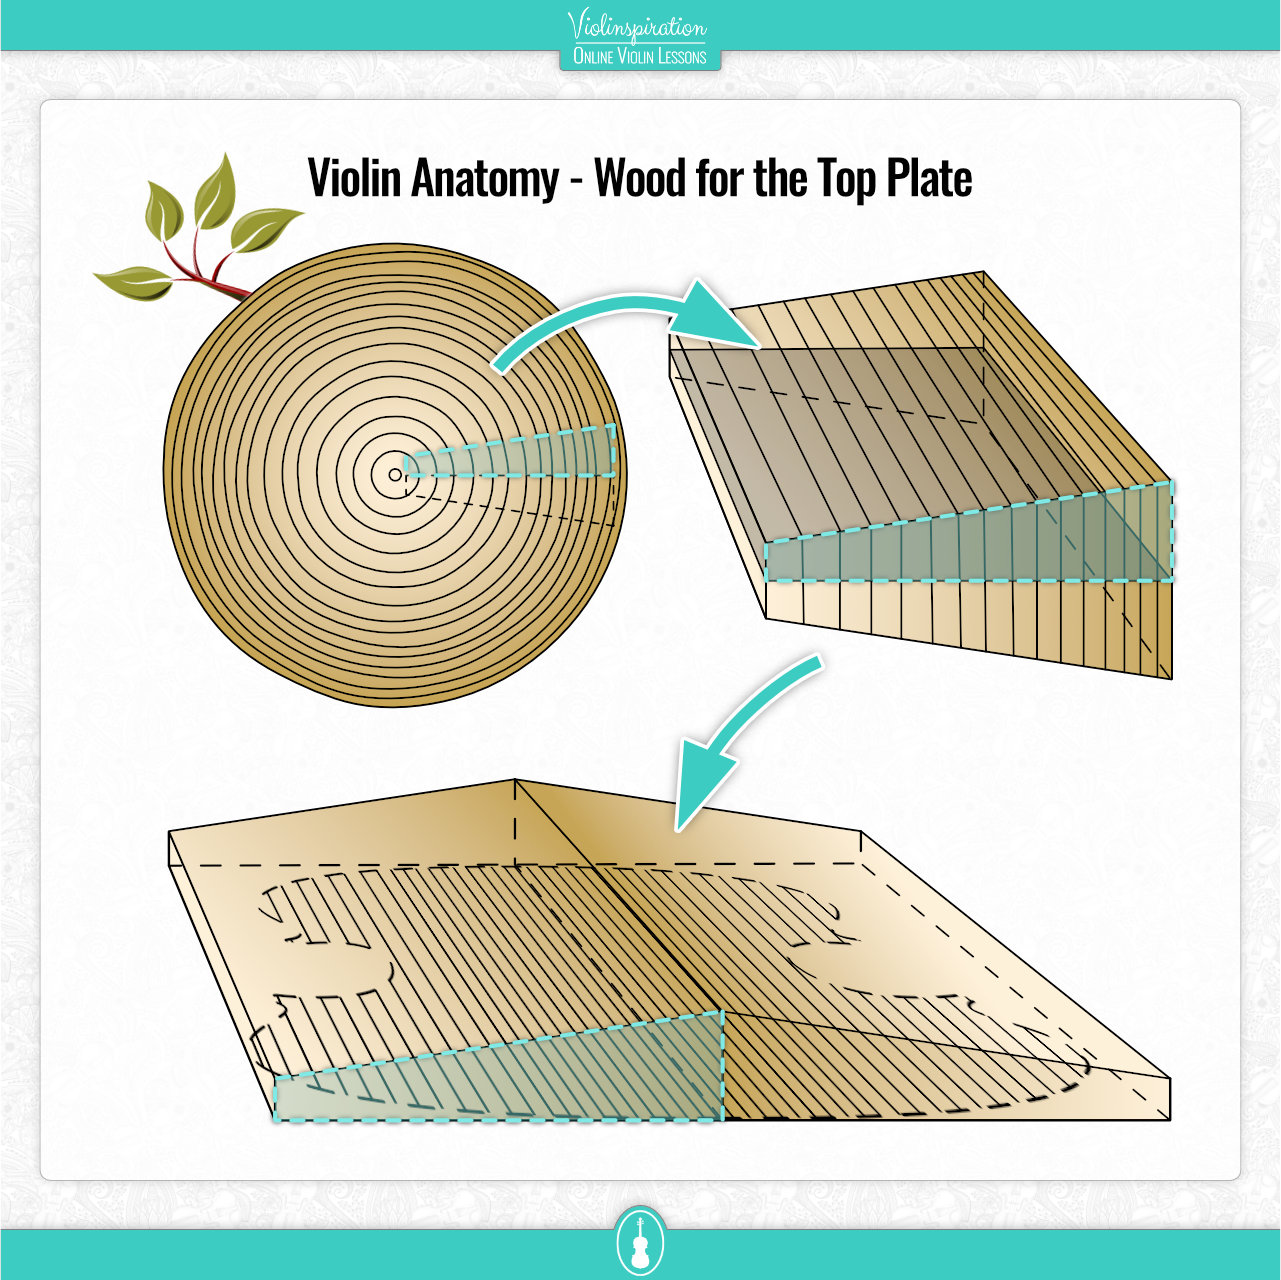 Violin Anatomy - Wood for the Top Plate